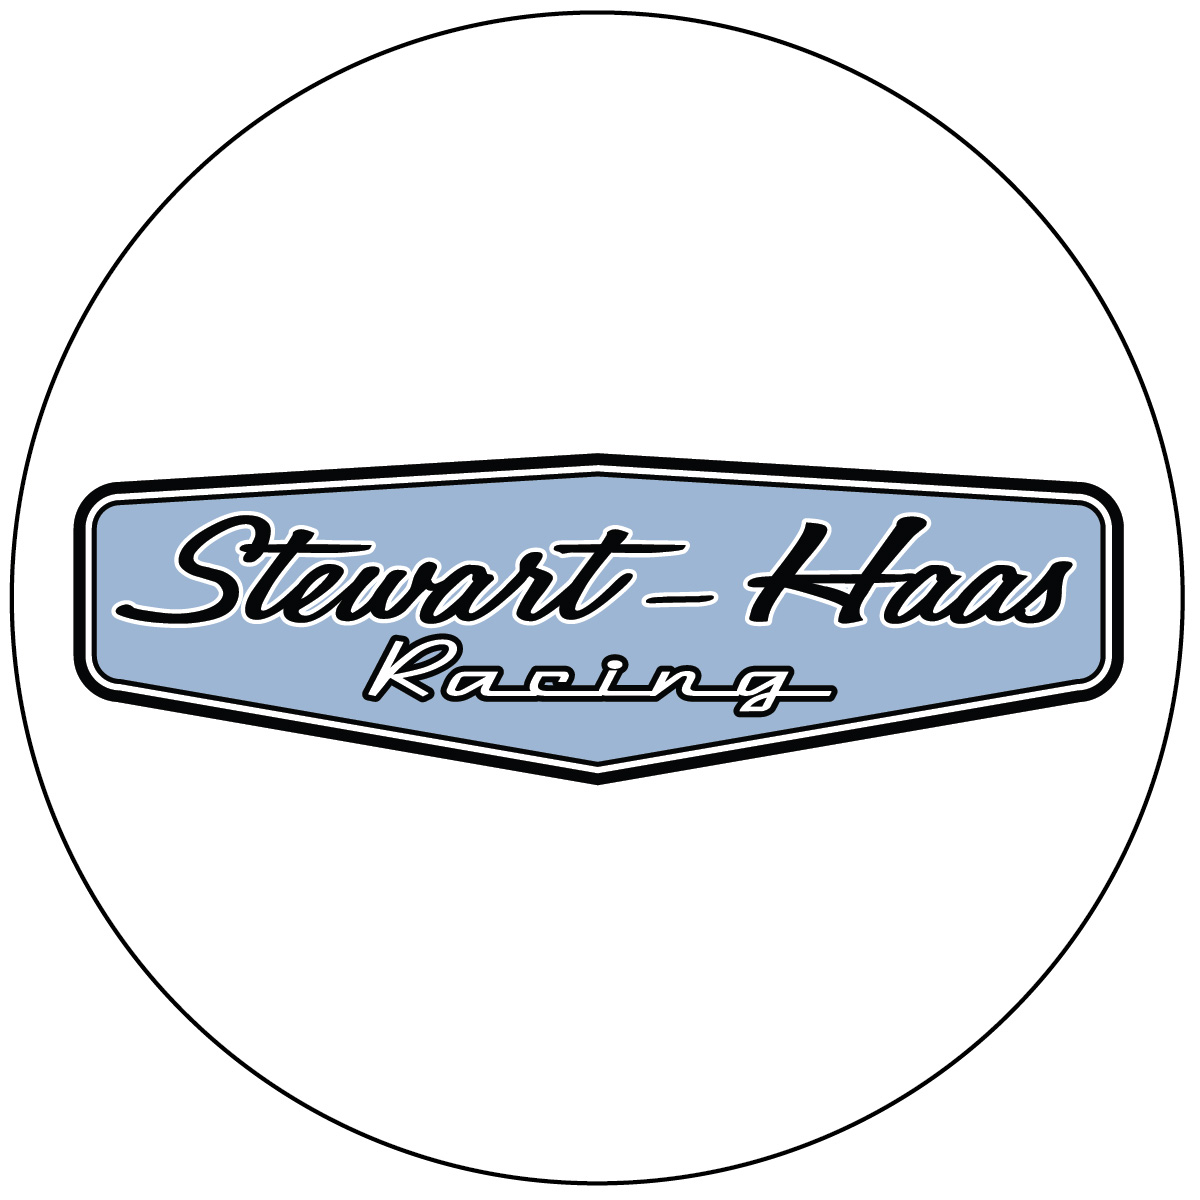 "Exclusive Stewart-Haas Racing 4"" Round Paper Coasters"